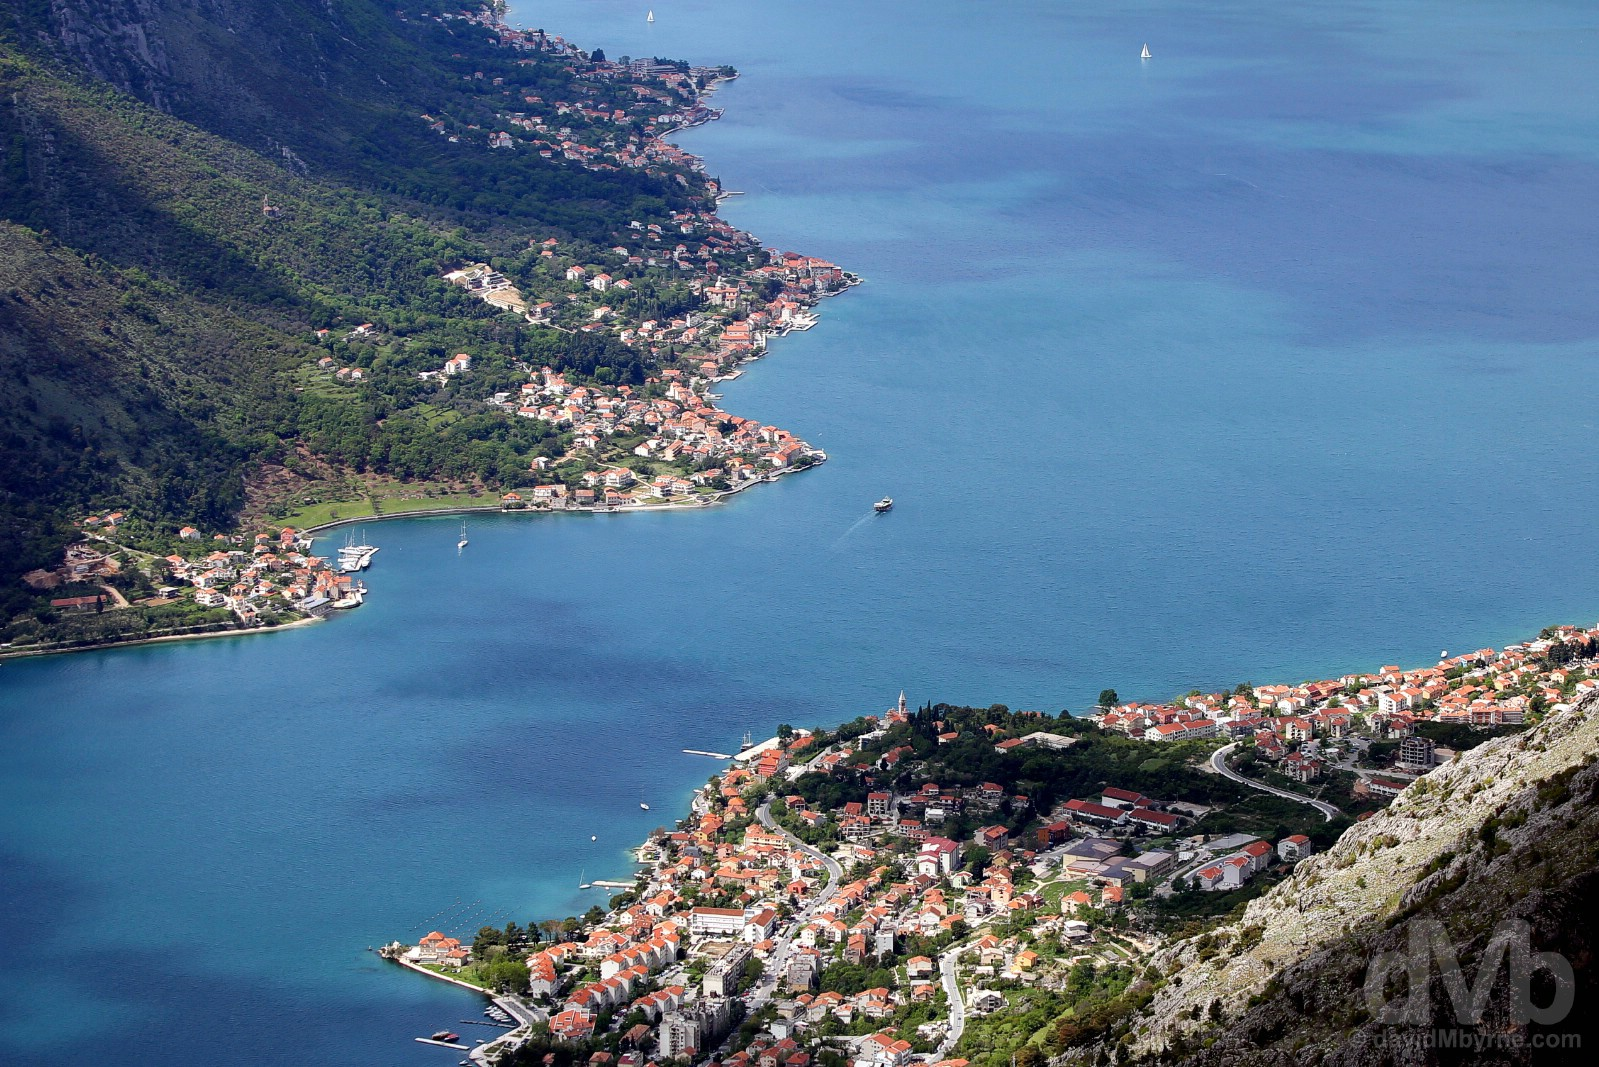 A portion of the Bay of Kotor as seen from the winding road above Kotor, Montenegro. April 20, 2017.